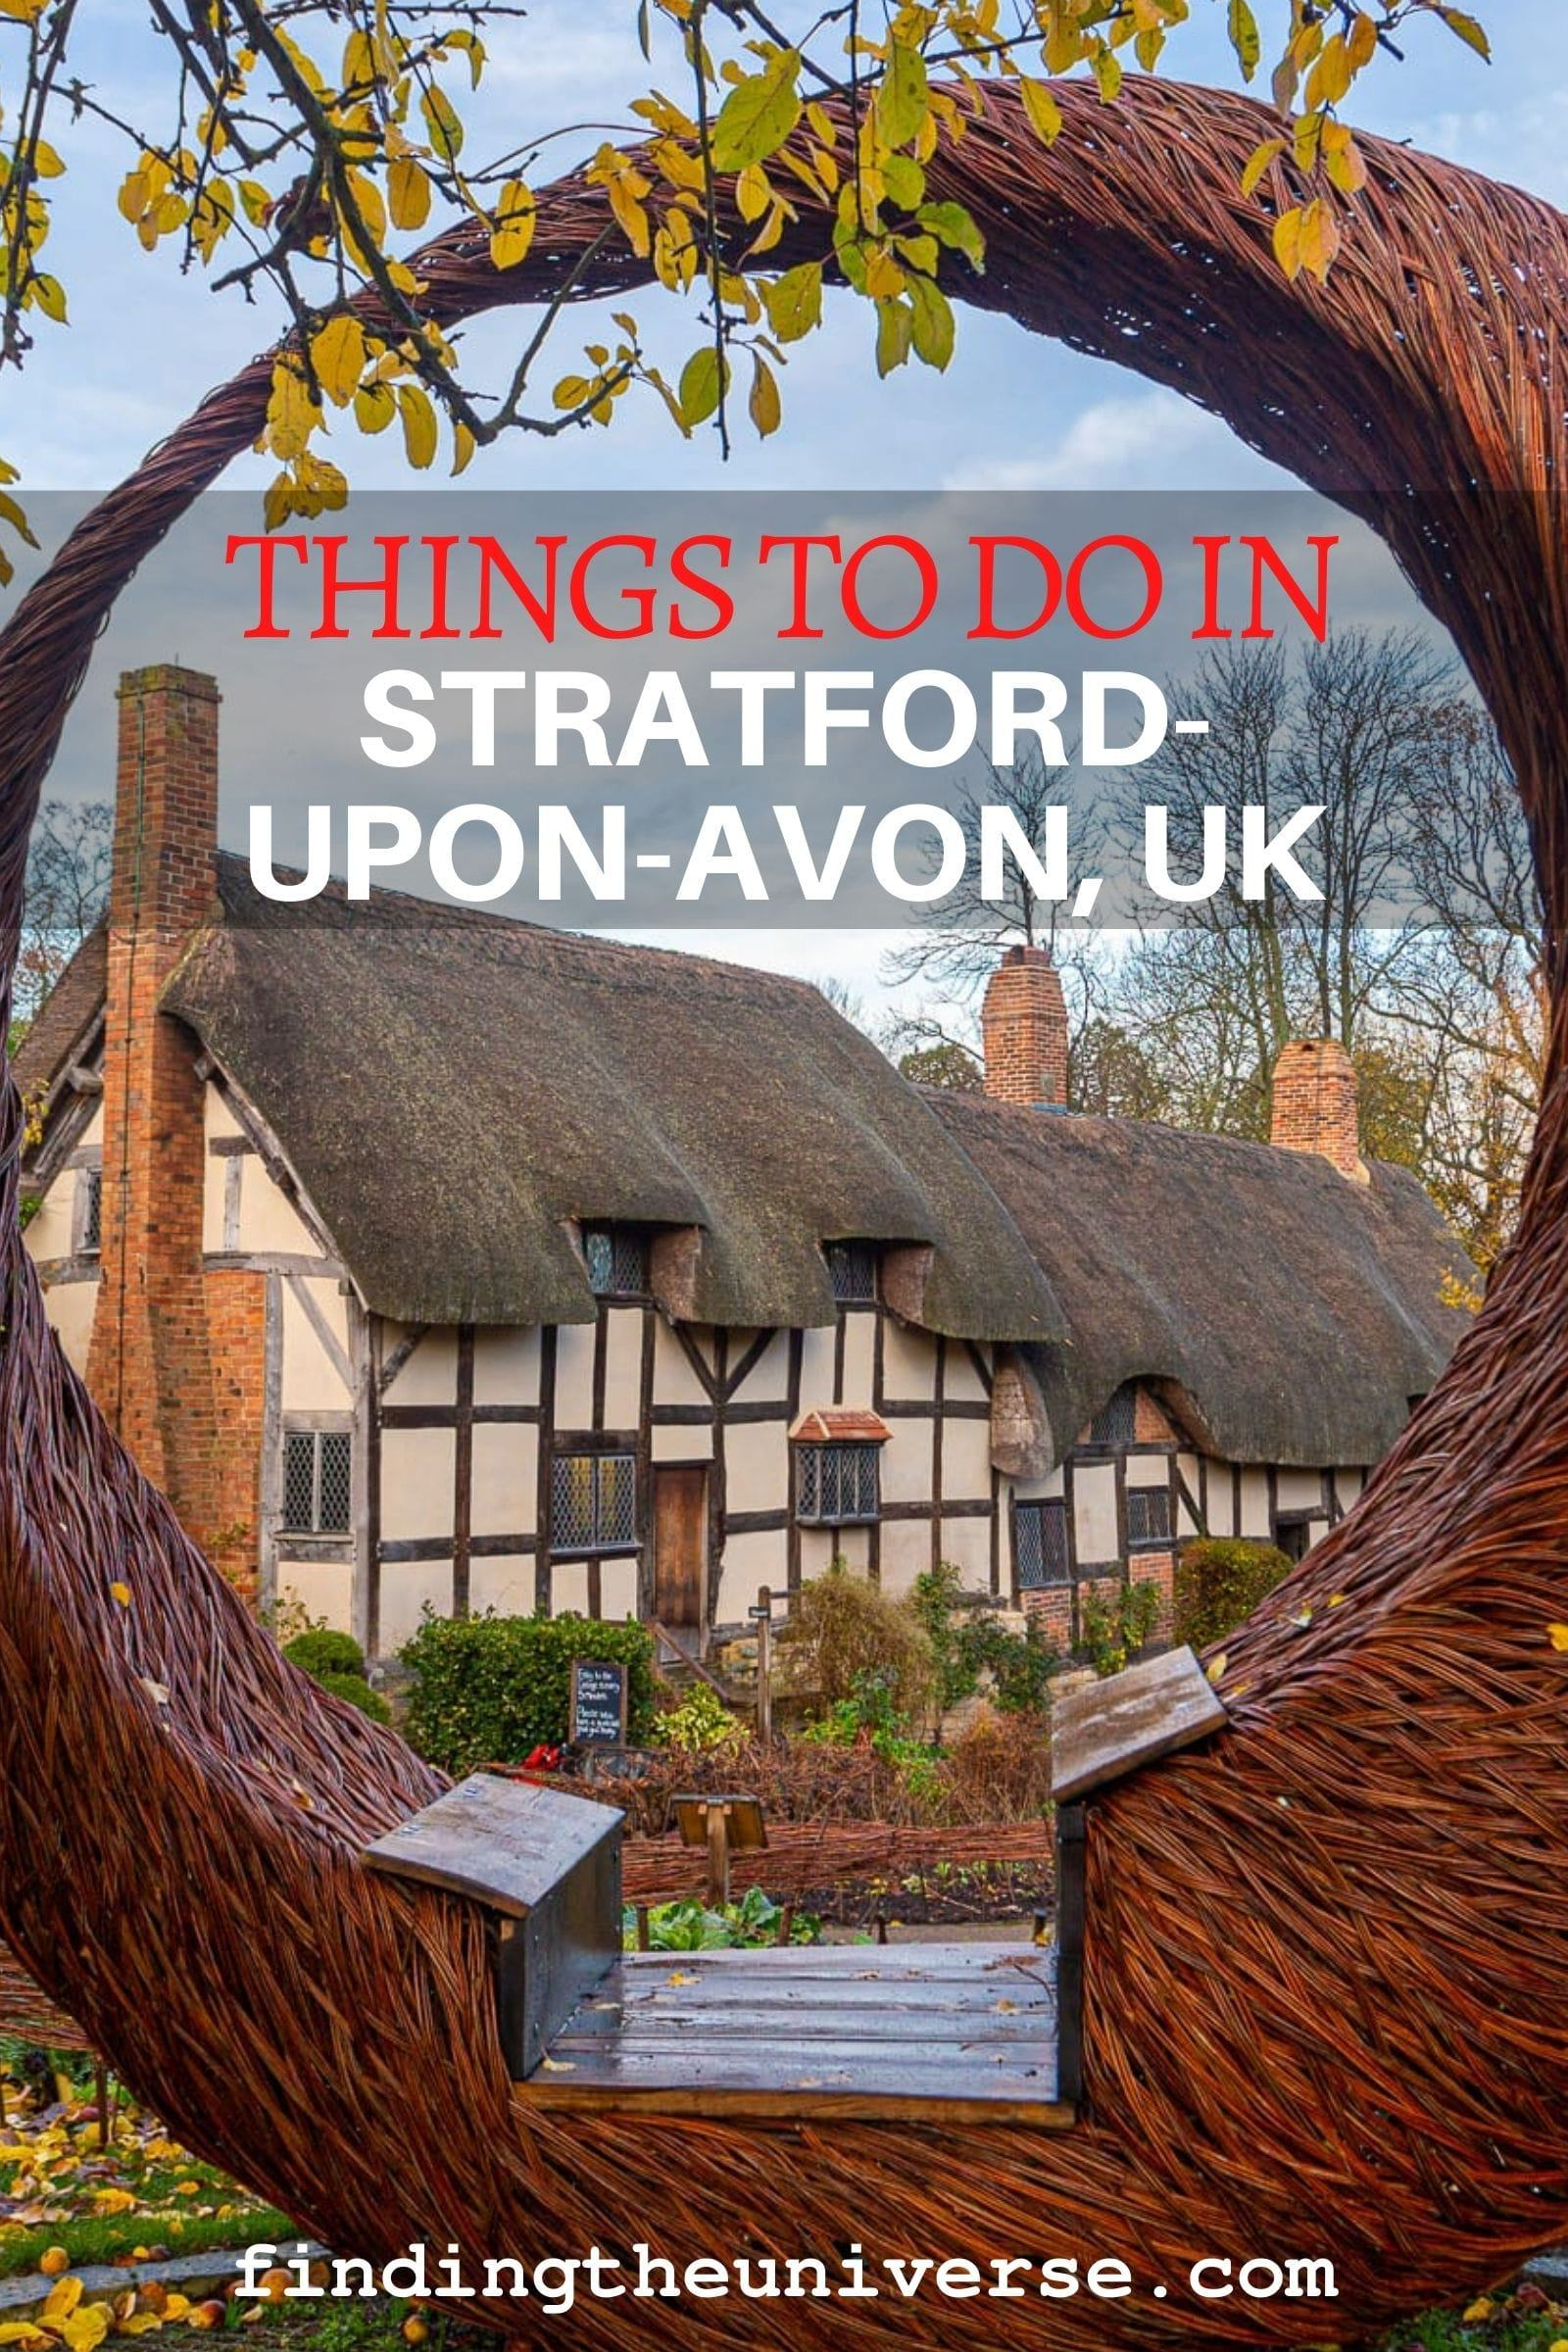 A detailed guide to things to do in Stratford-upon-avon. All the Shakespeare sights, plus many more attractions and tips for your visit!